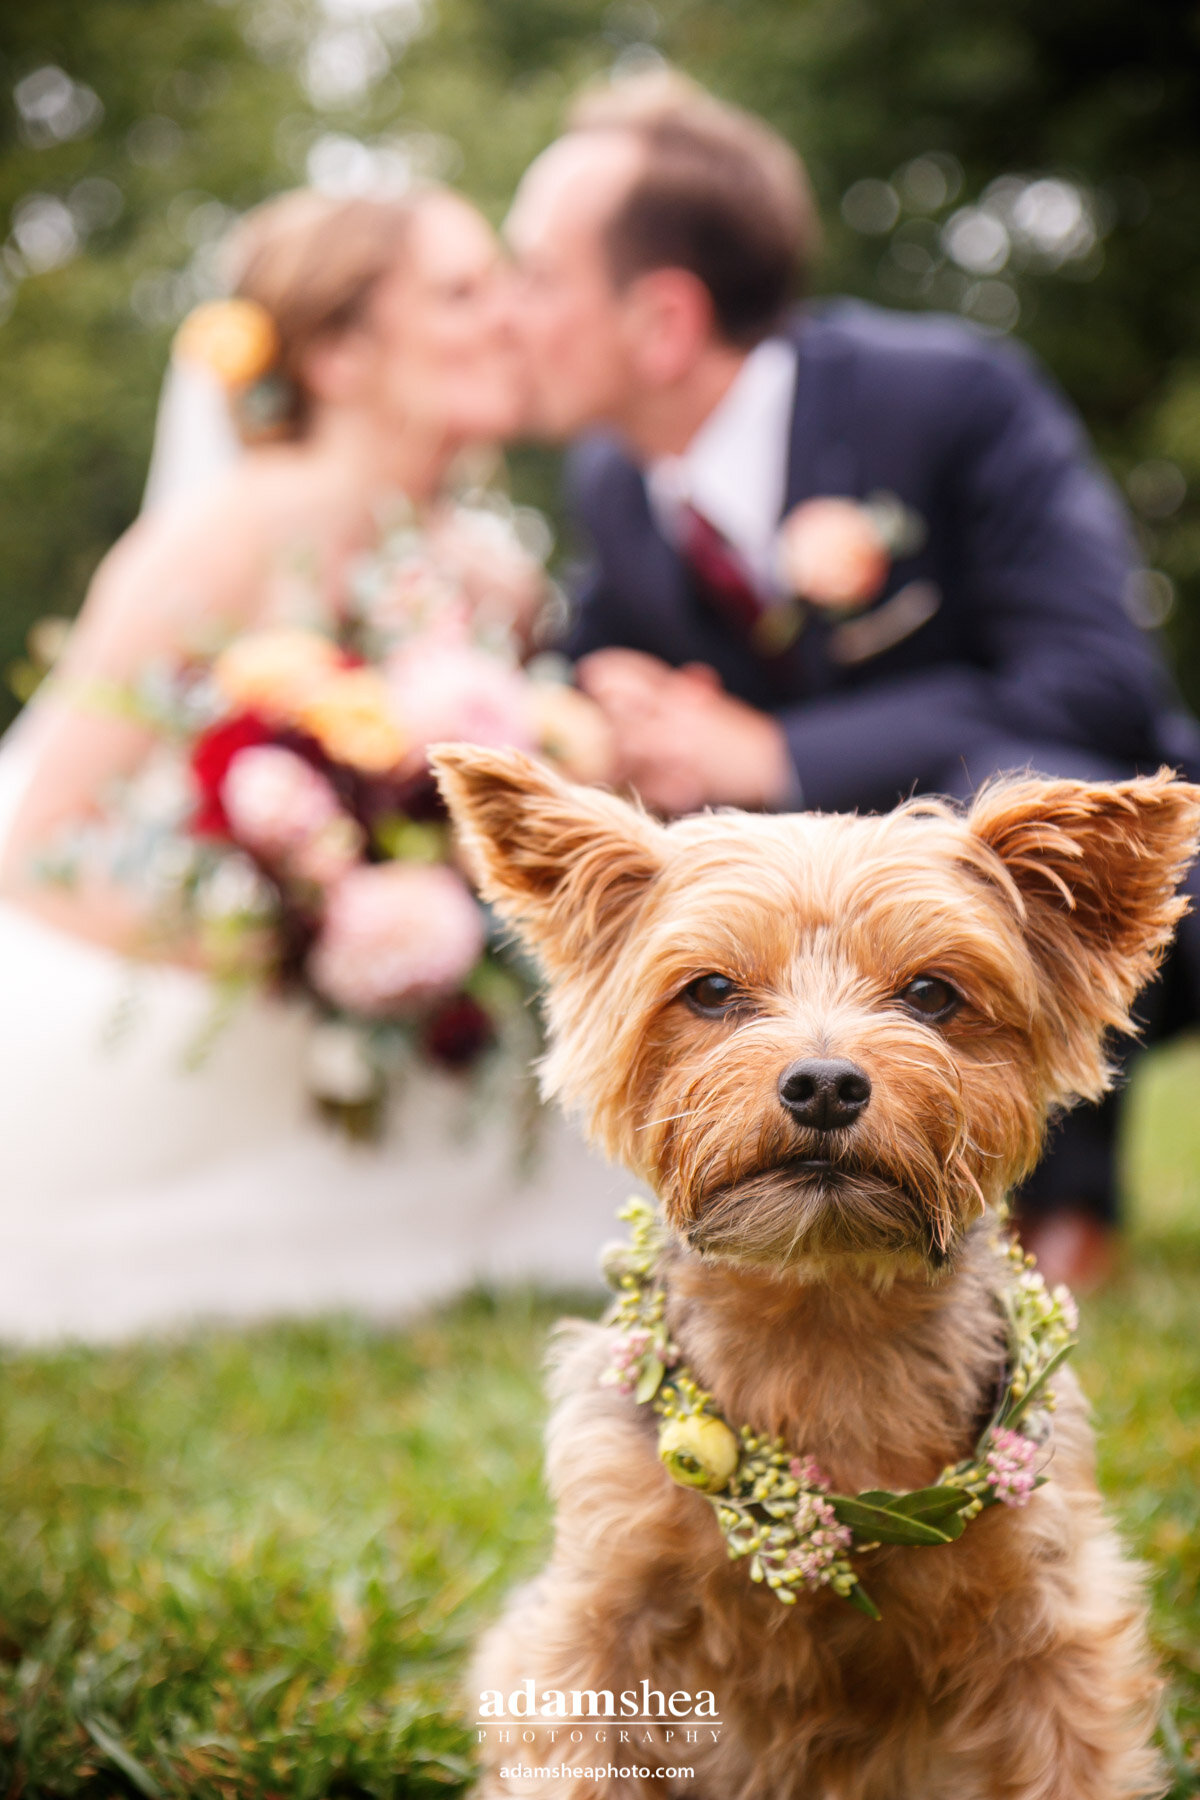 Gorgeous Wedding Fields at the Reserve - Stoughton WI - Adam Shea Photography - Bride and Groom With Pup